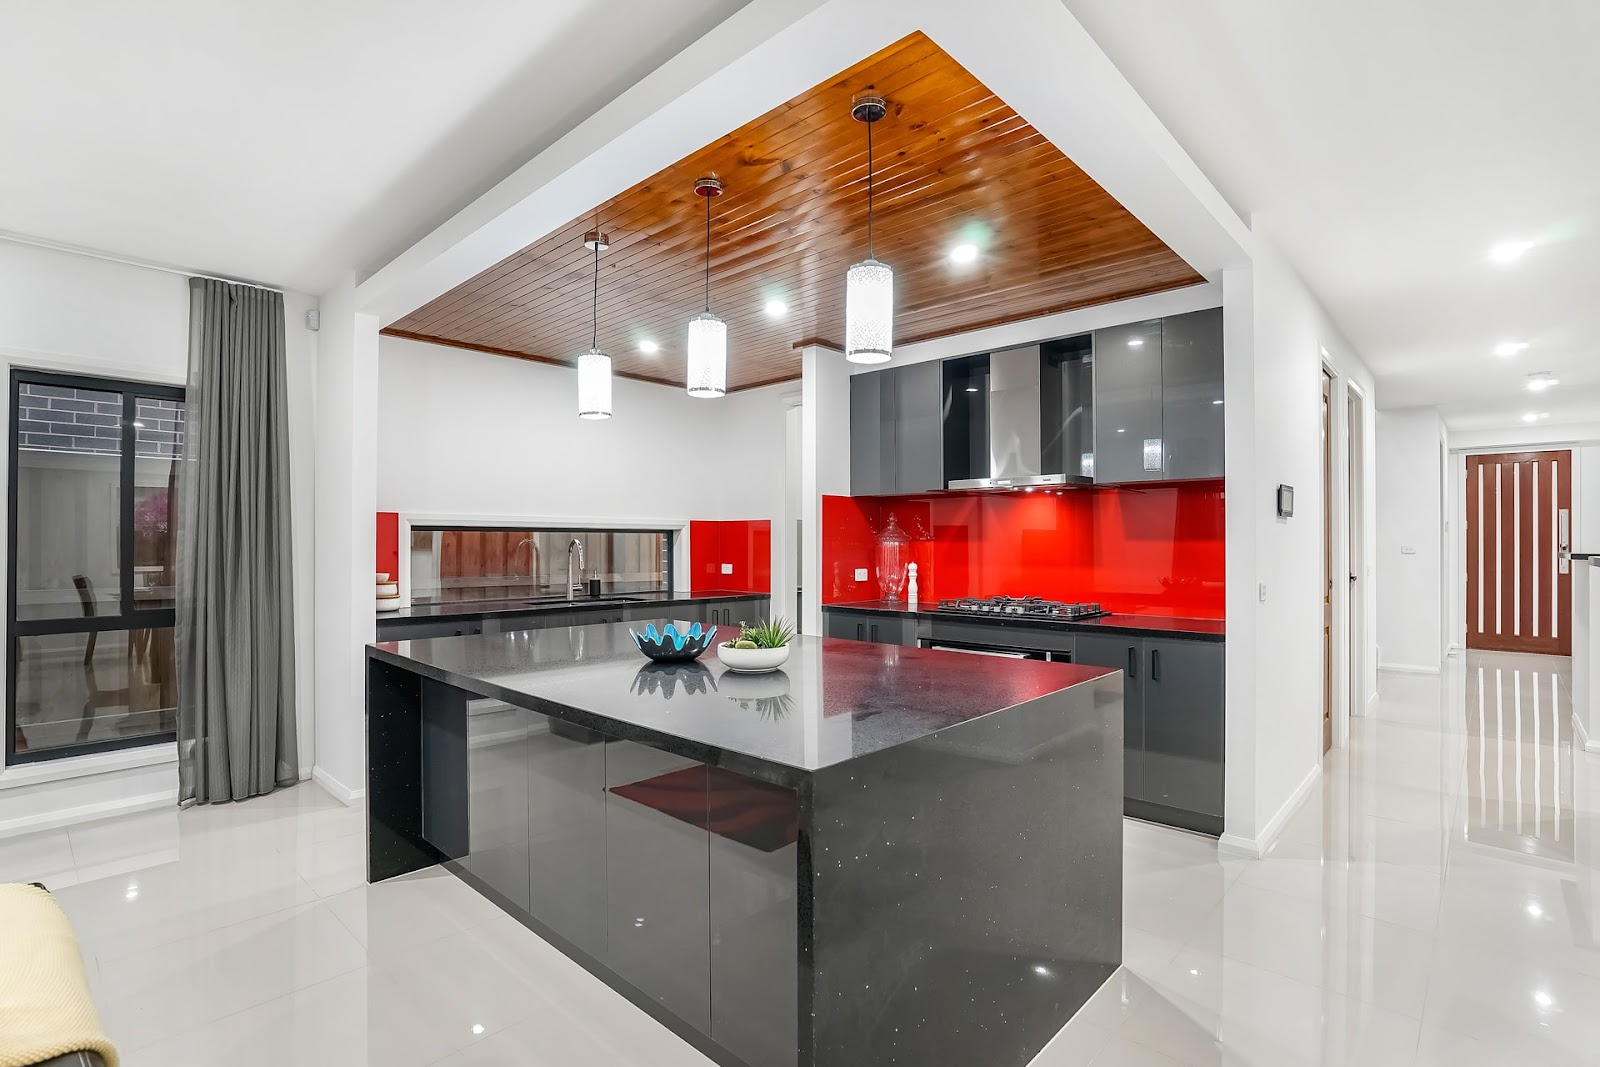 A sleek, modern kitchen with one red wall and granite countertop.